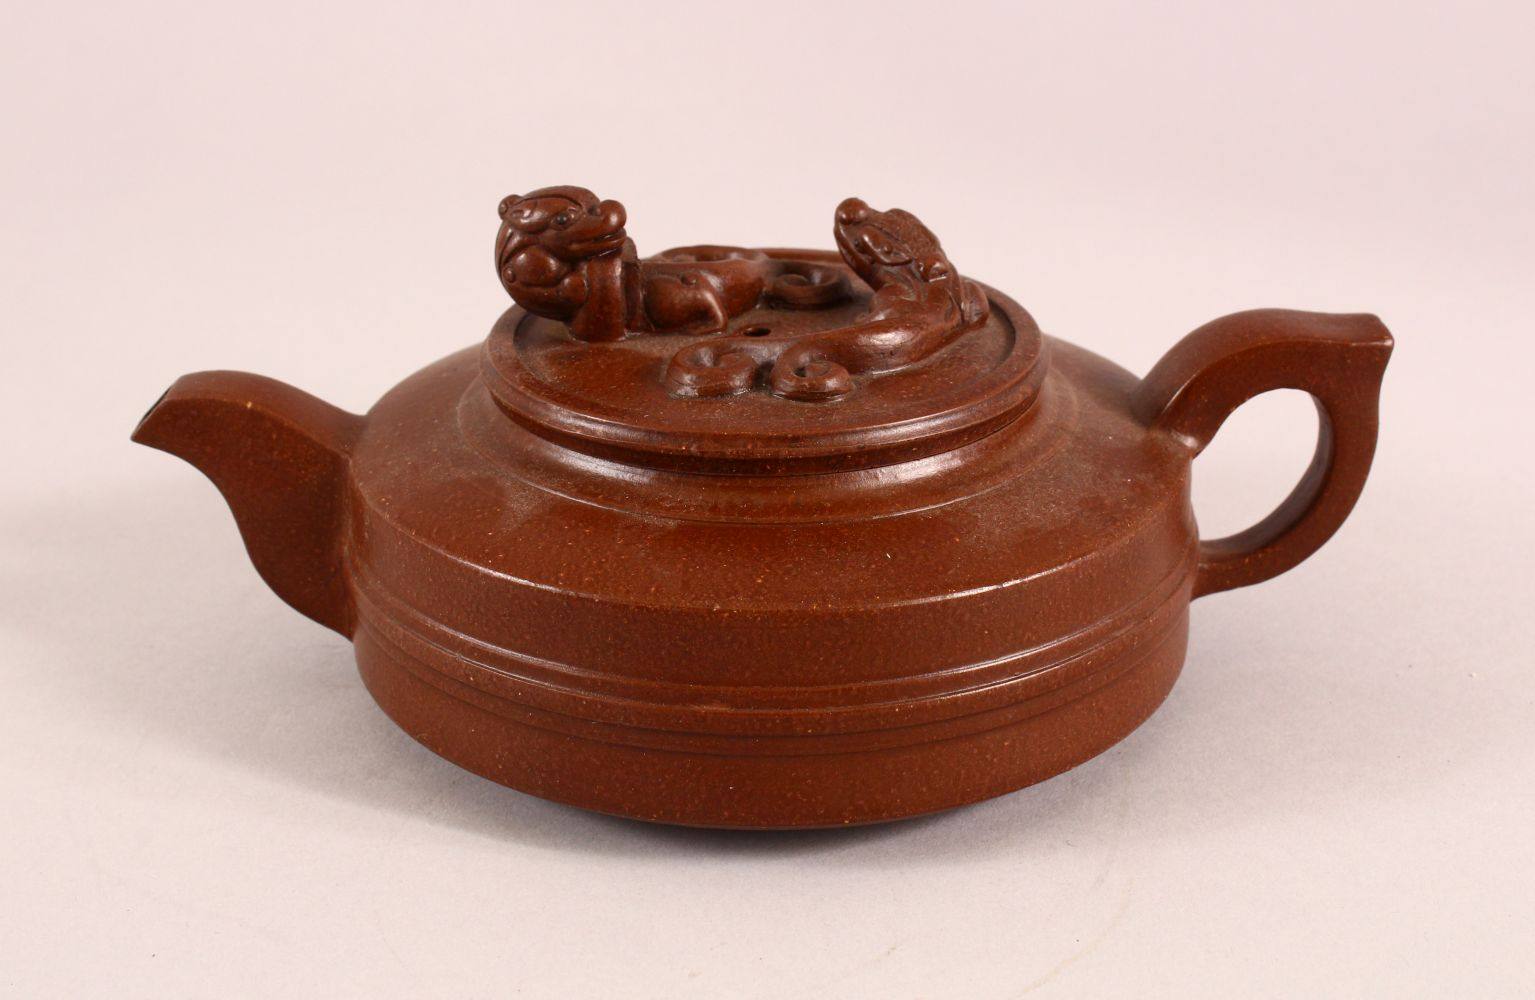 A CHINESE YIXING CLAY TEAPOT, with moulded beast like figures, the underside of the pot and lid with